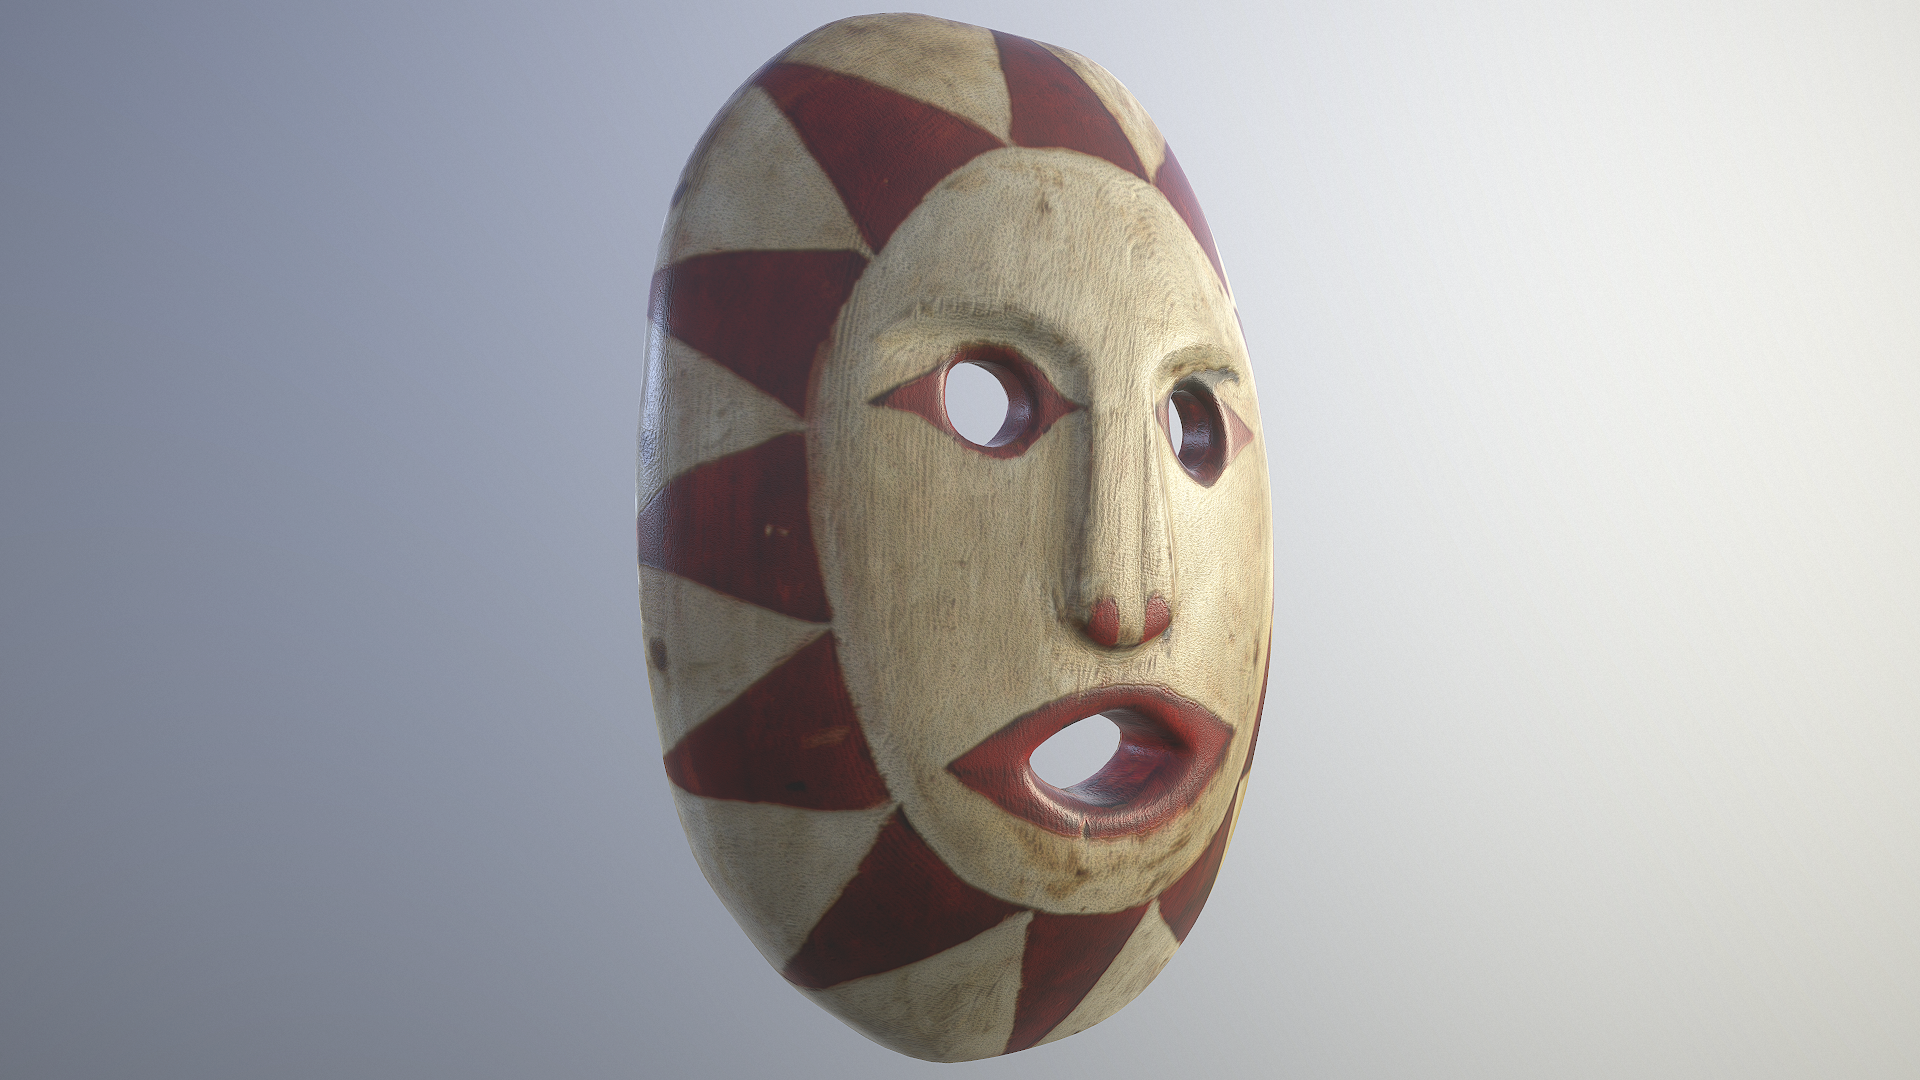 Mask by August Jack Khatsalano - 3D Scanning Result